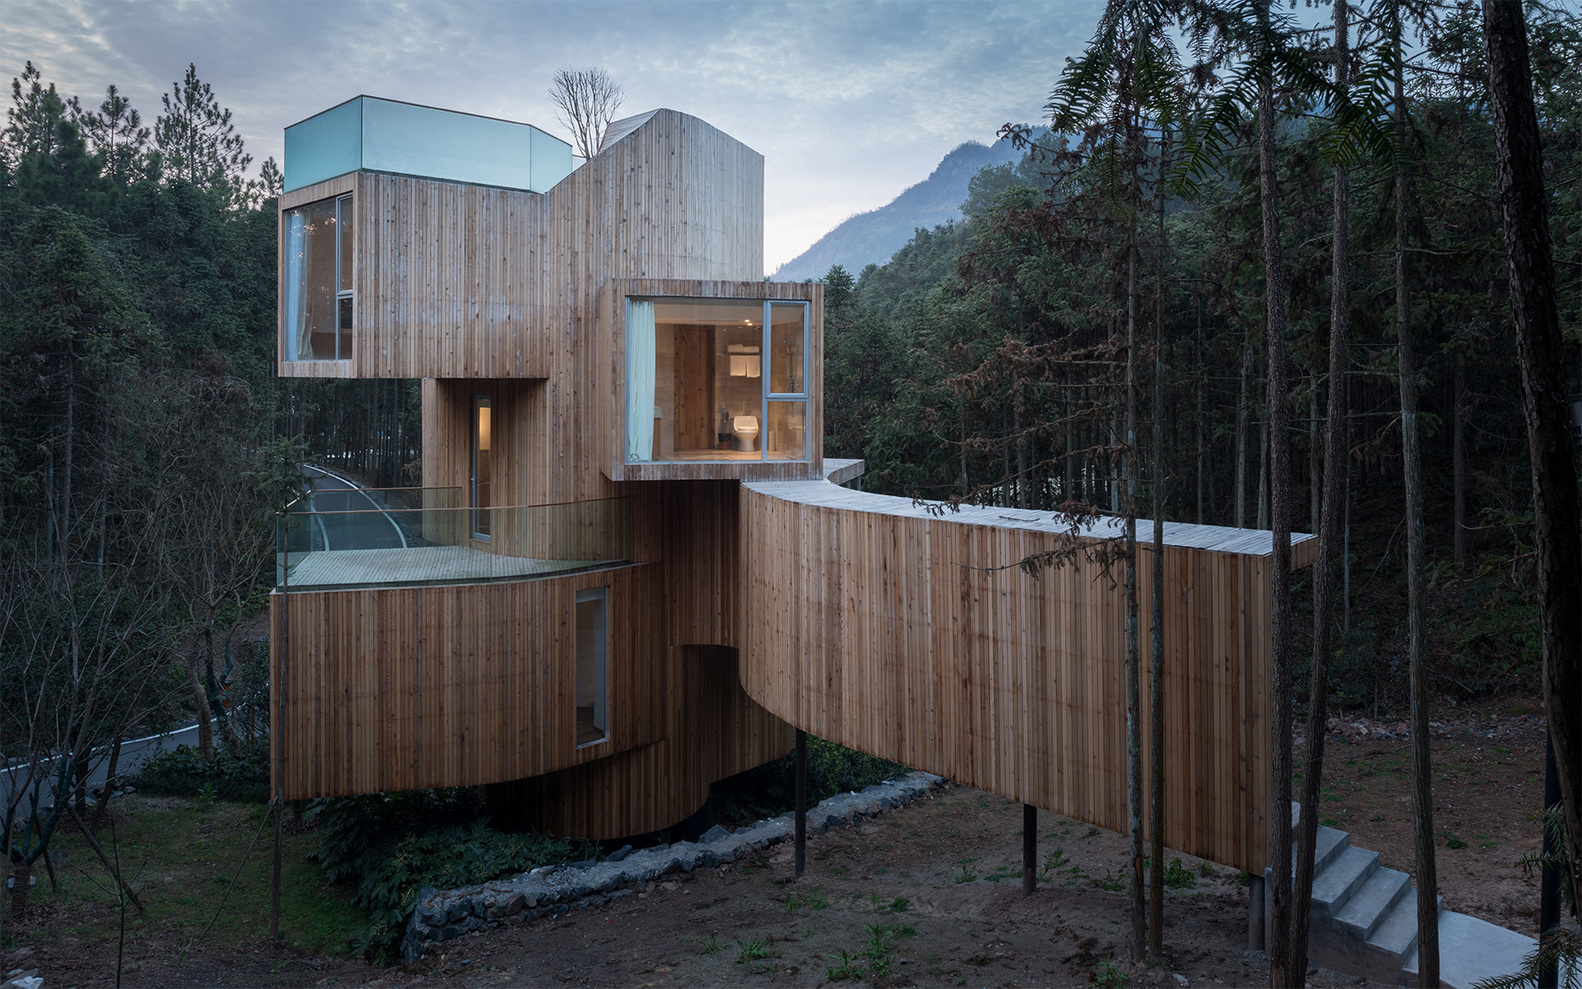 3_The Qiyun Mountain Tree House_Bengo Studio_Inspirationist